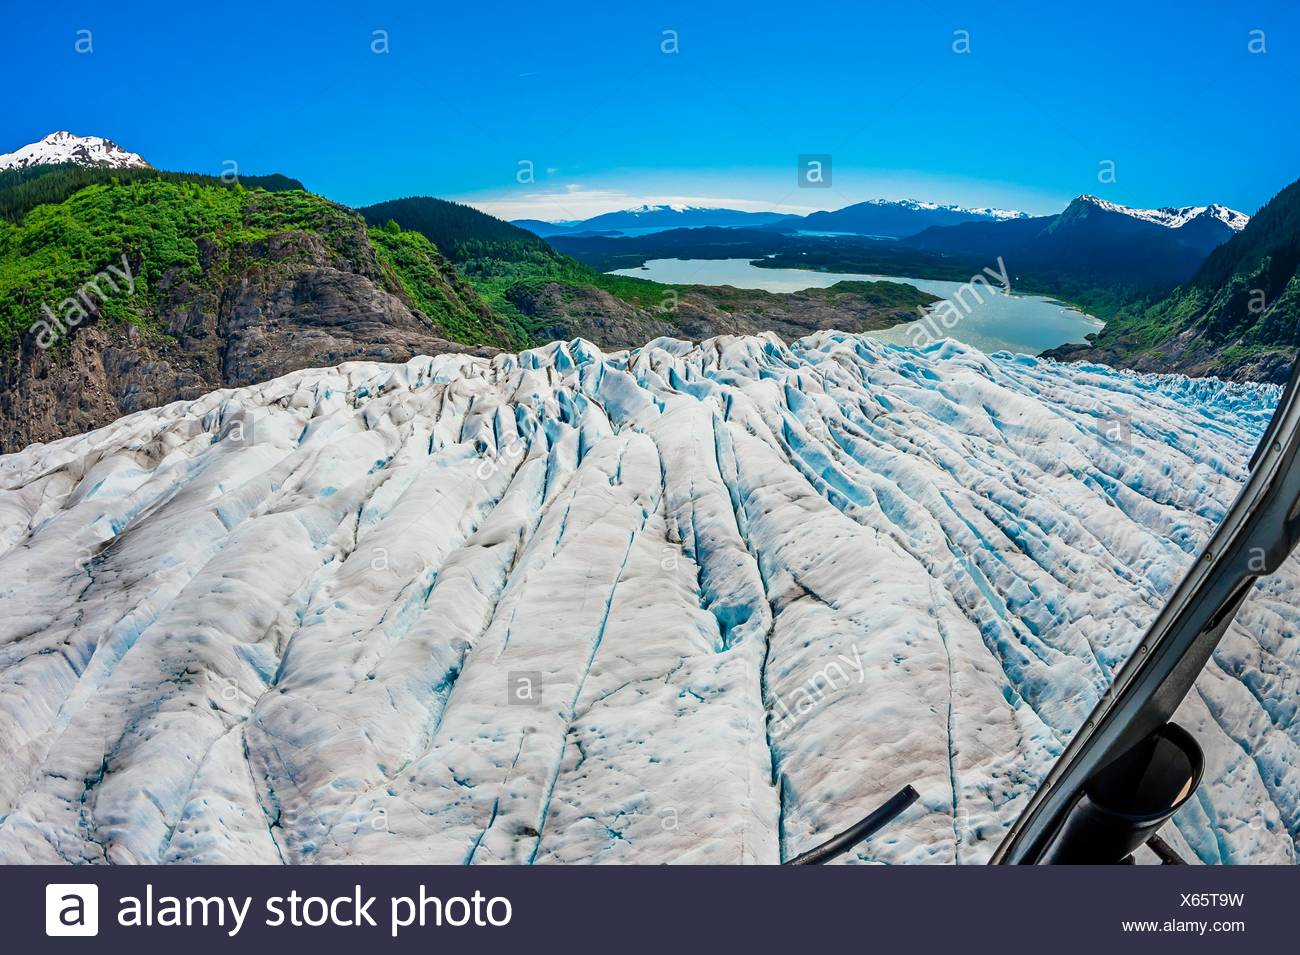 Aerial view, Mendenhall Glacier (with Mendenhall Lake in background), near Juneau, Alaska USA. - Stock Image